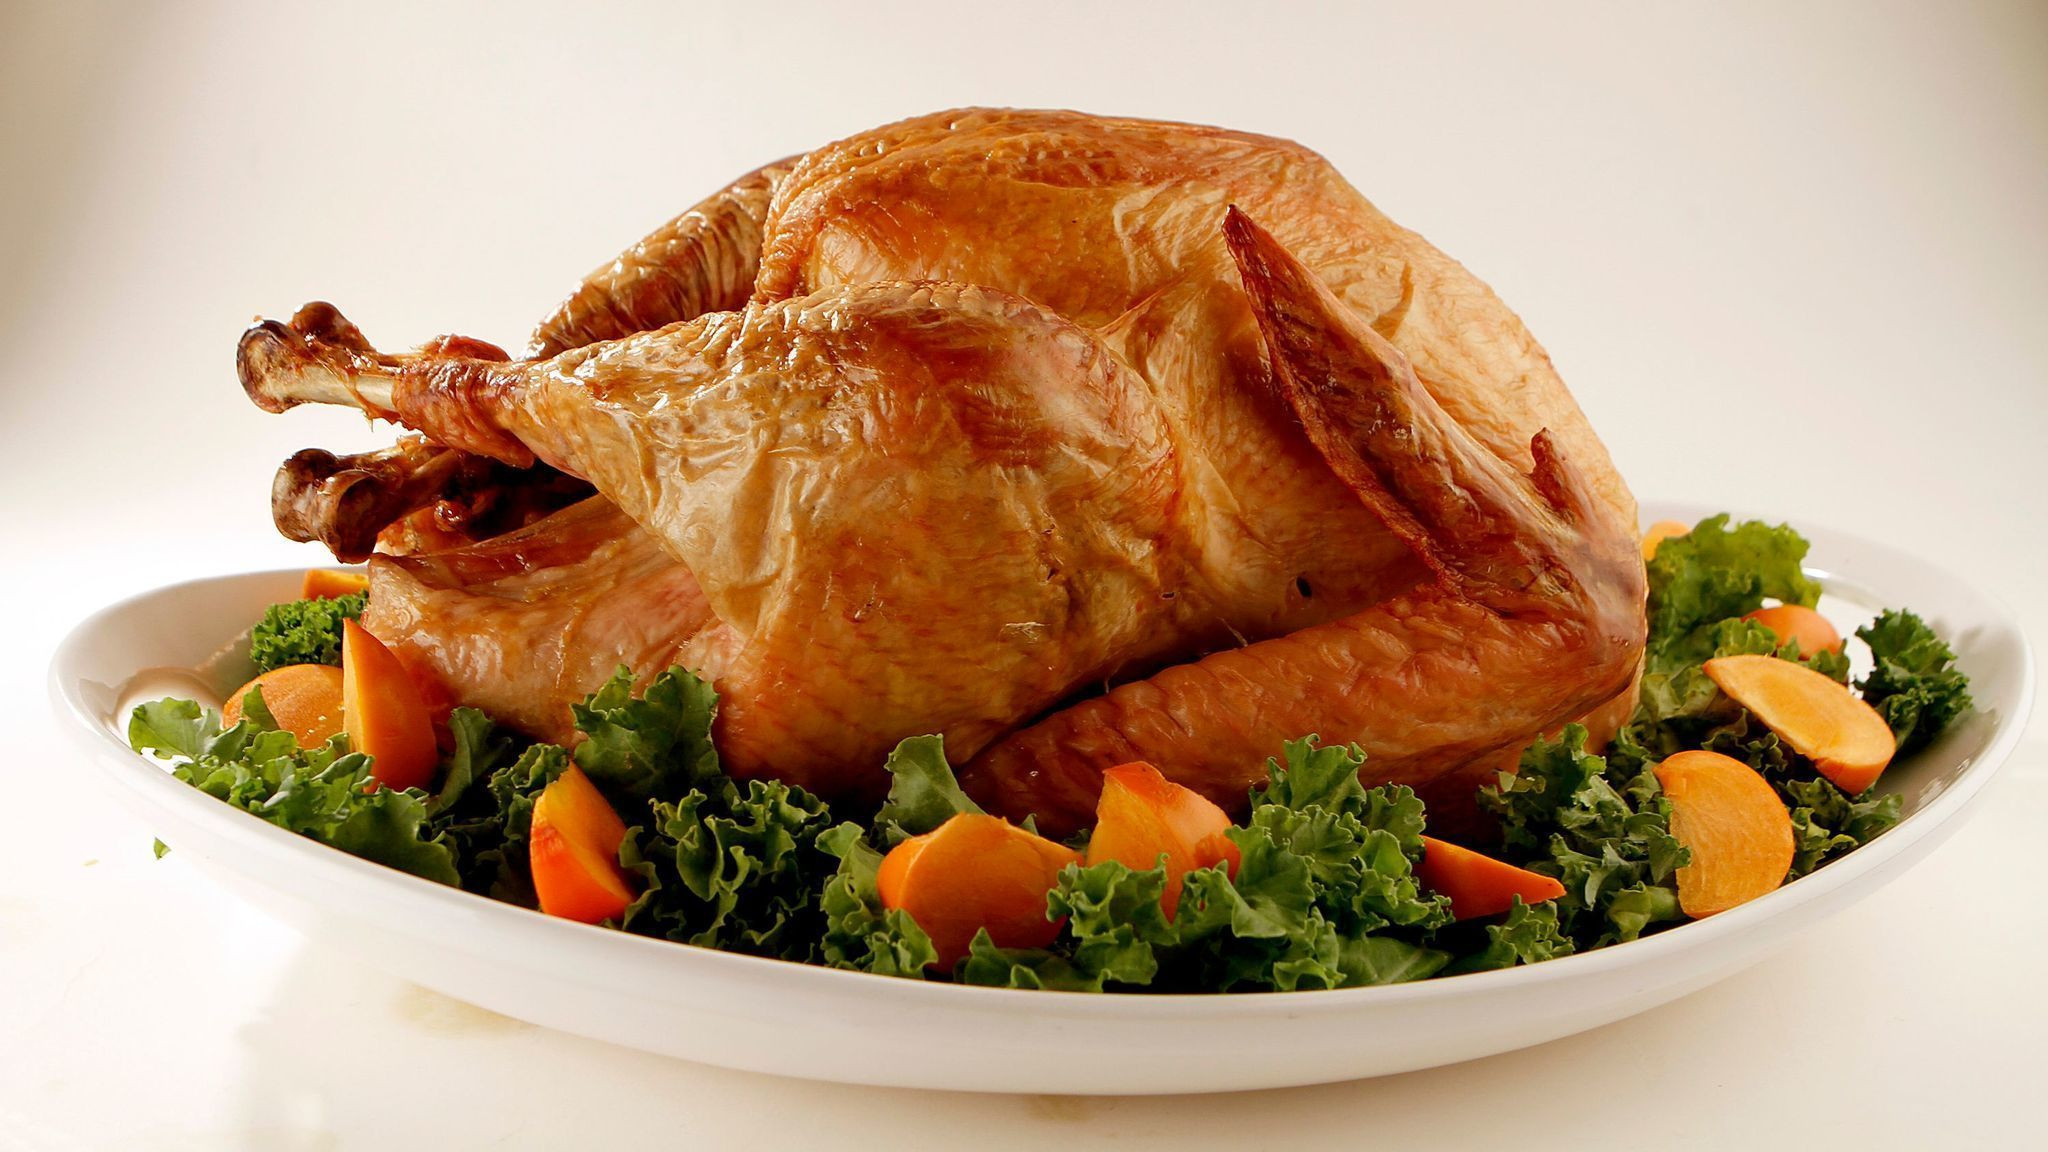 Make Thanksgiving Turkey  A beginner s guide to cooking a Thanksgiving turkey LA Times